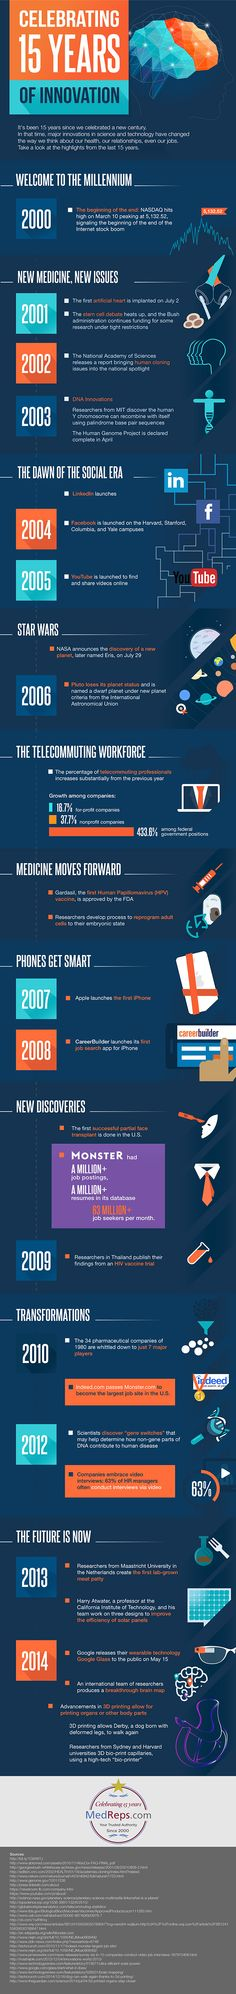 A Look Back At The Major Innovations That Have Shaped The Millennium (Infographic)